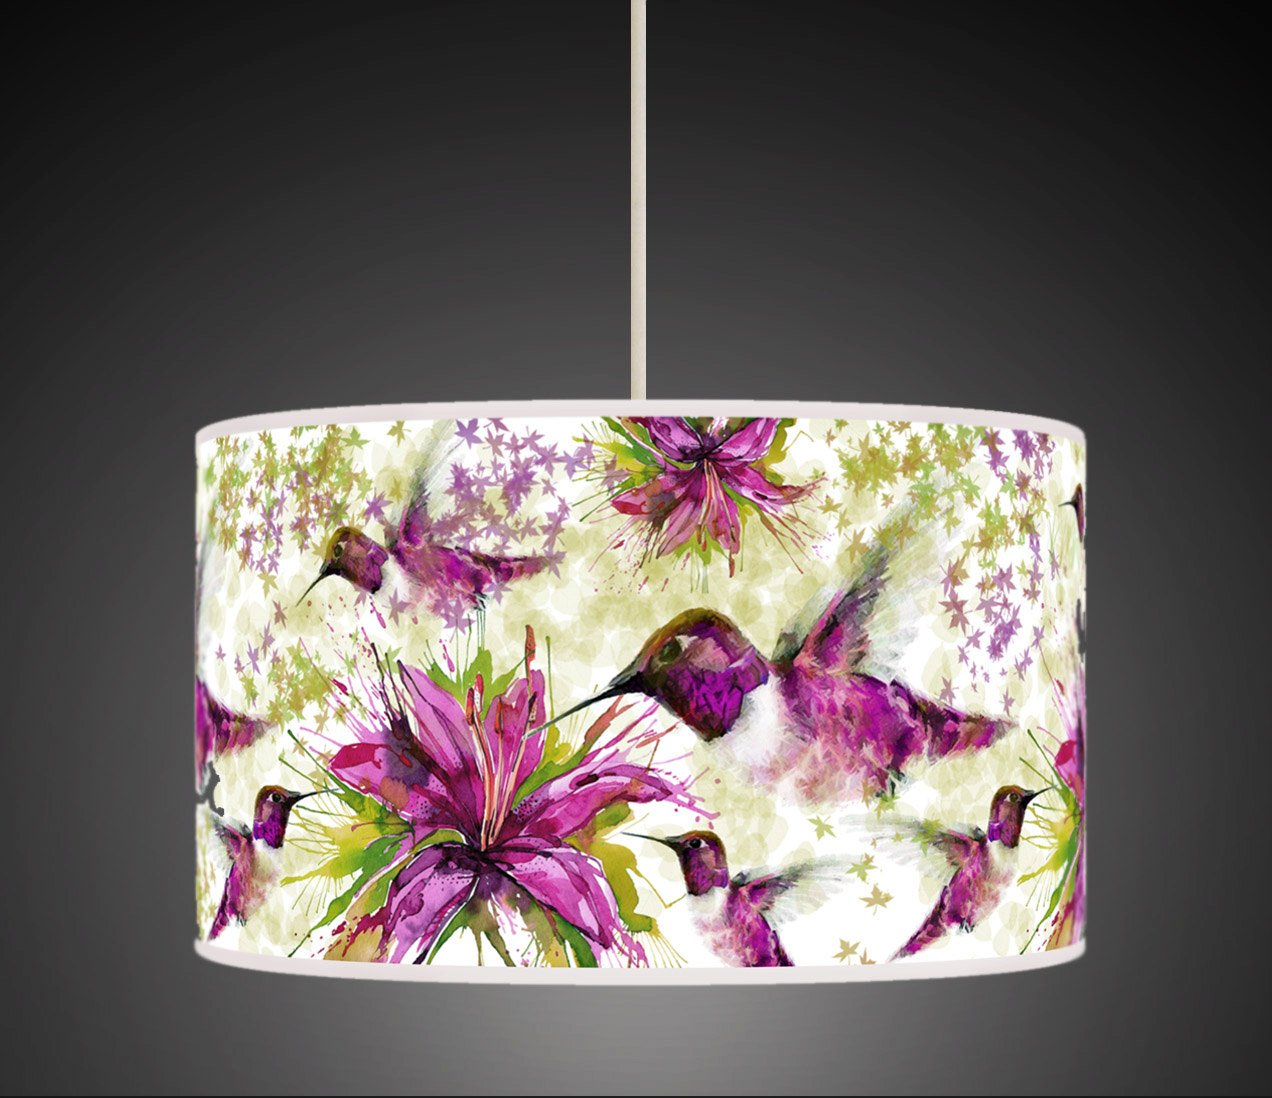 30cm purple green flower hummingbird watercolour handmade giclee 30cm purple green flower hummingbird watercolour handmade giclee style printed fabric lamp drum lampshade floor ceiling pendant light shade 634 mozeypictures Images